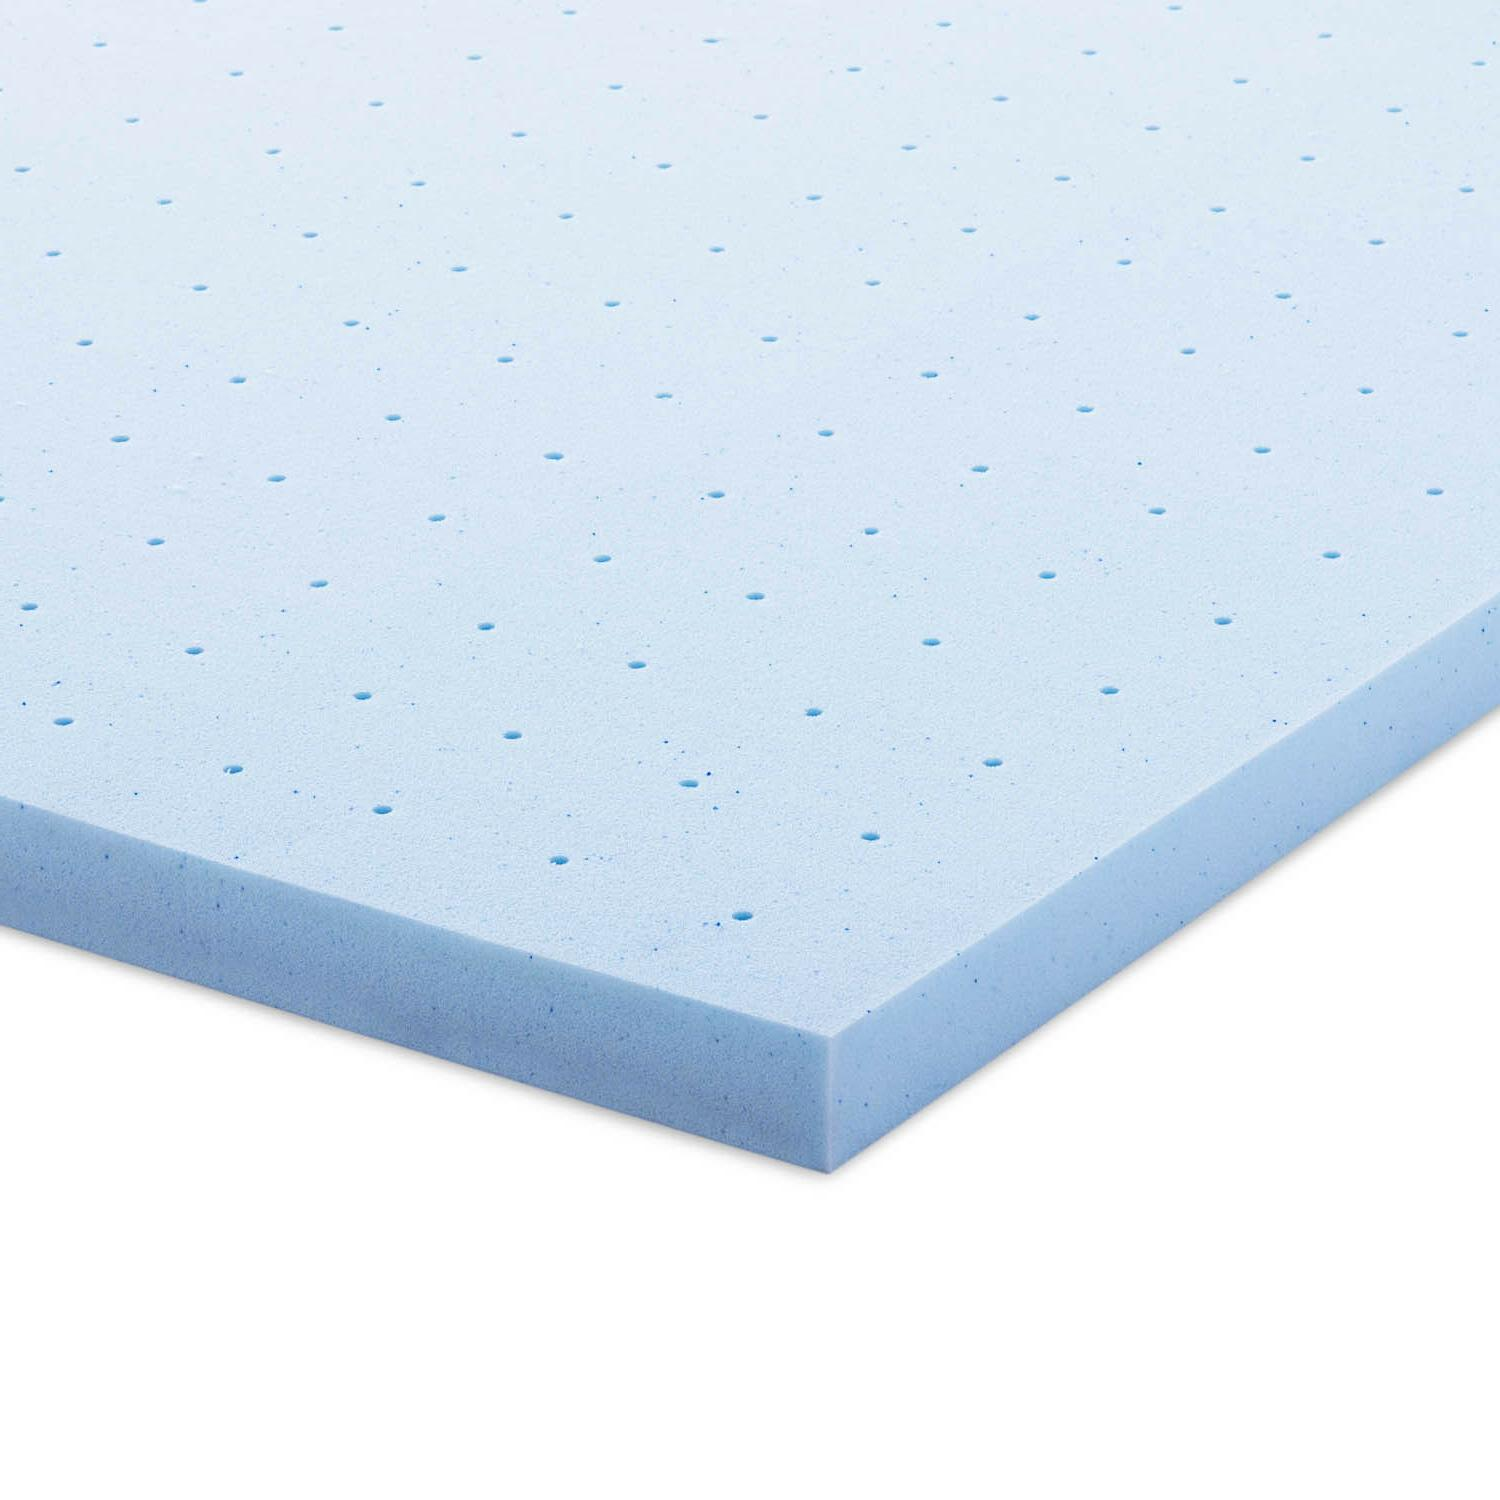 2.5 Inch Cooling Memory Foam Topper - Full Queen and Size